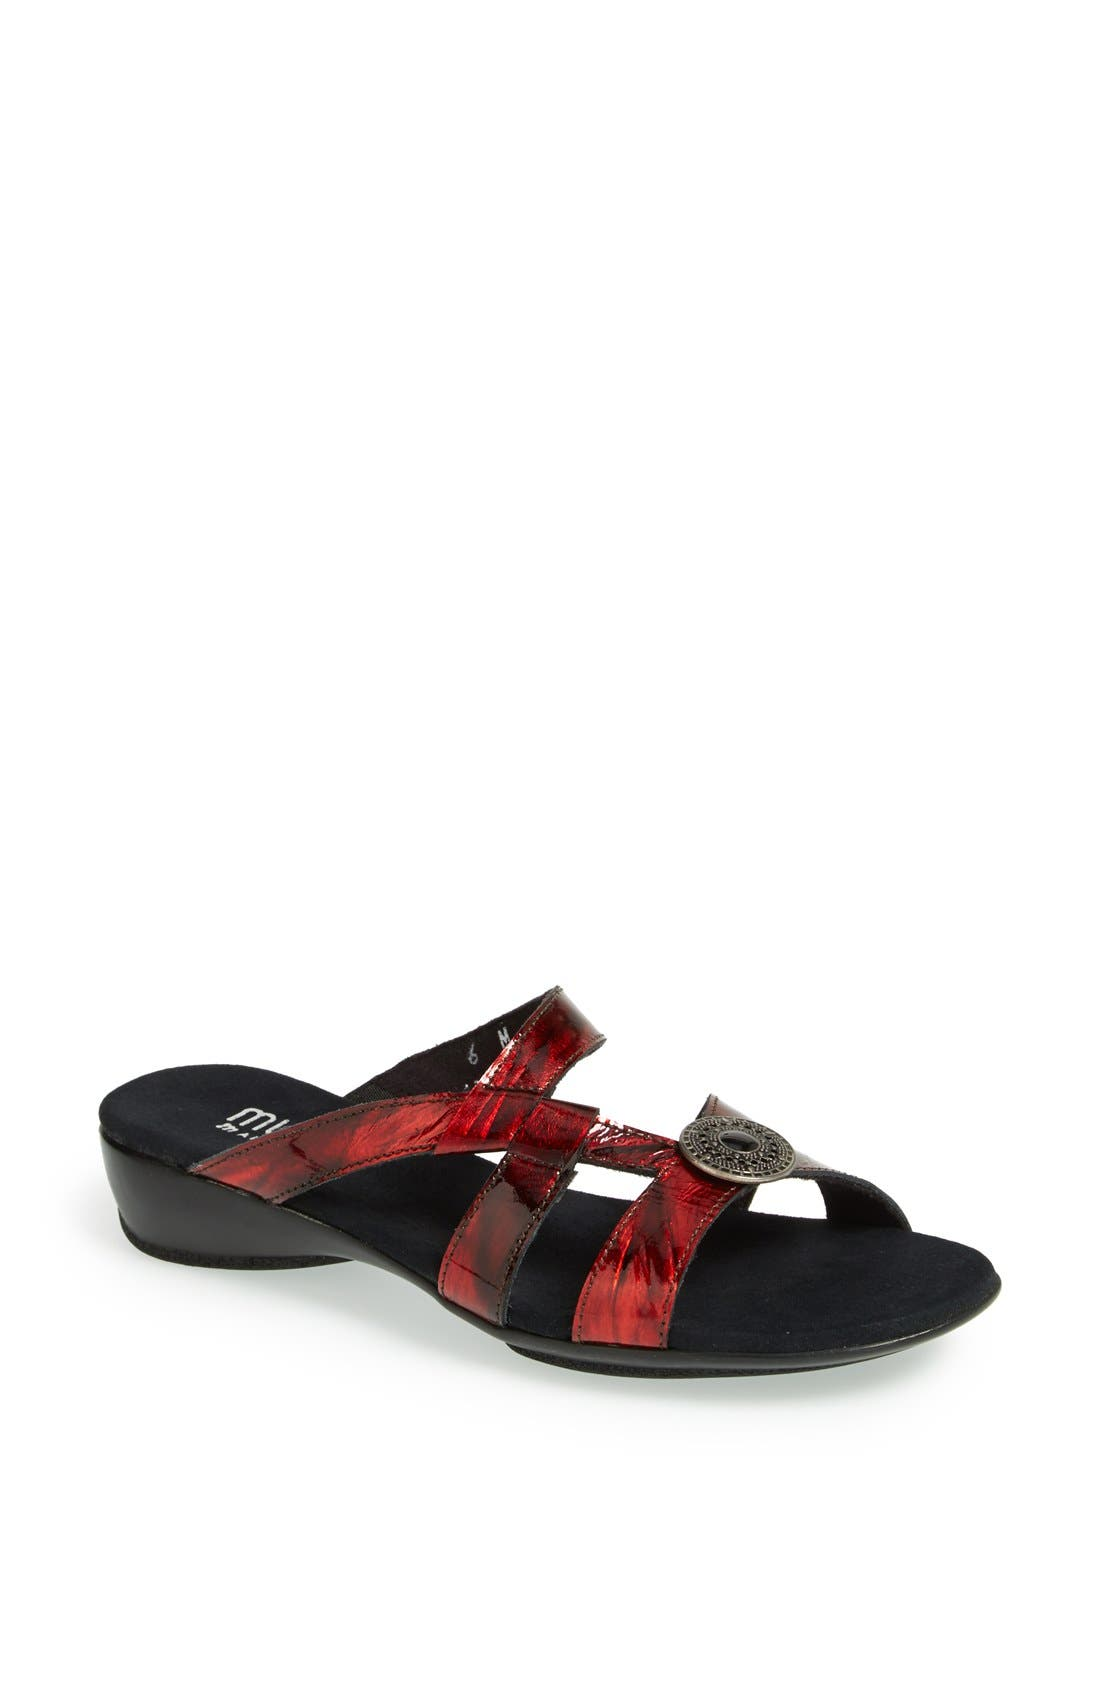 'Chloe' Leather Slide,                             Main thumbnail 1, color,                             Red Metal